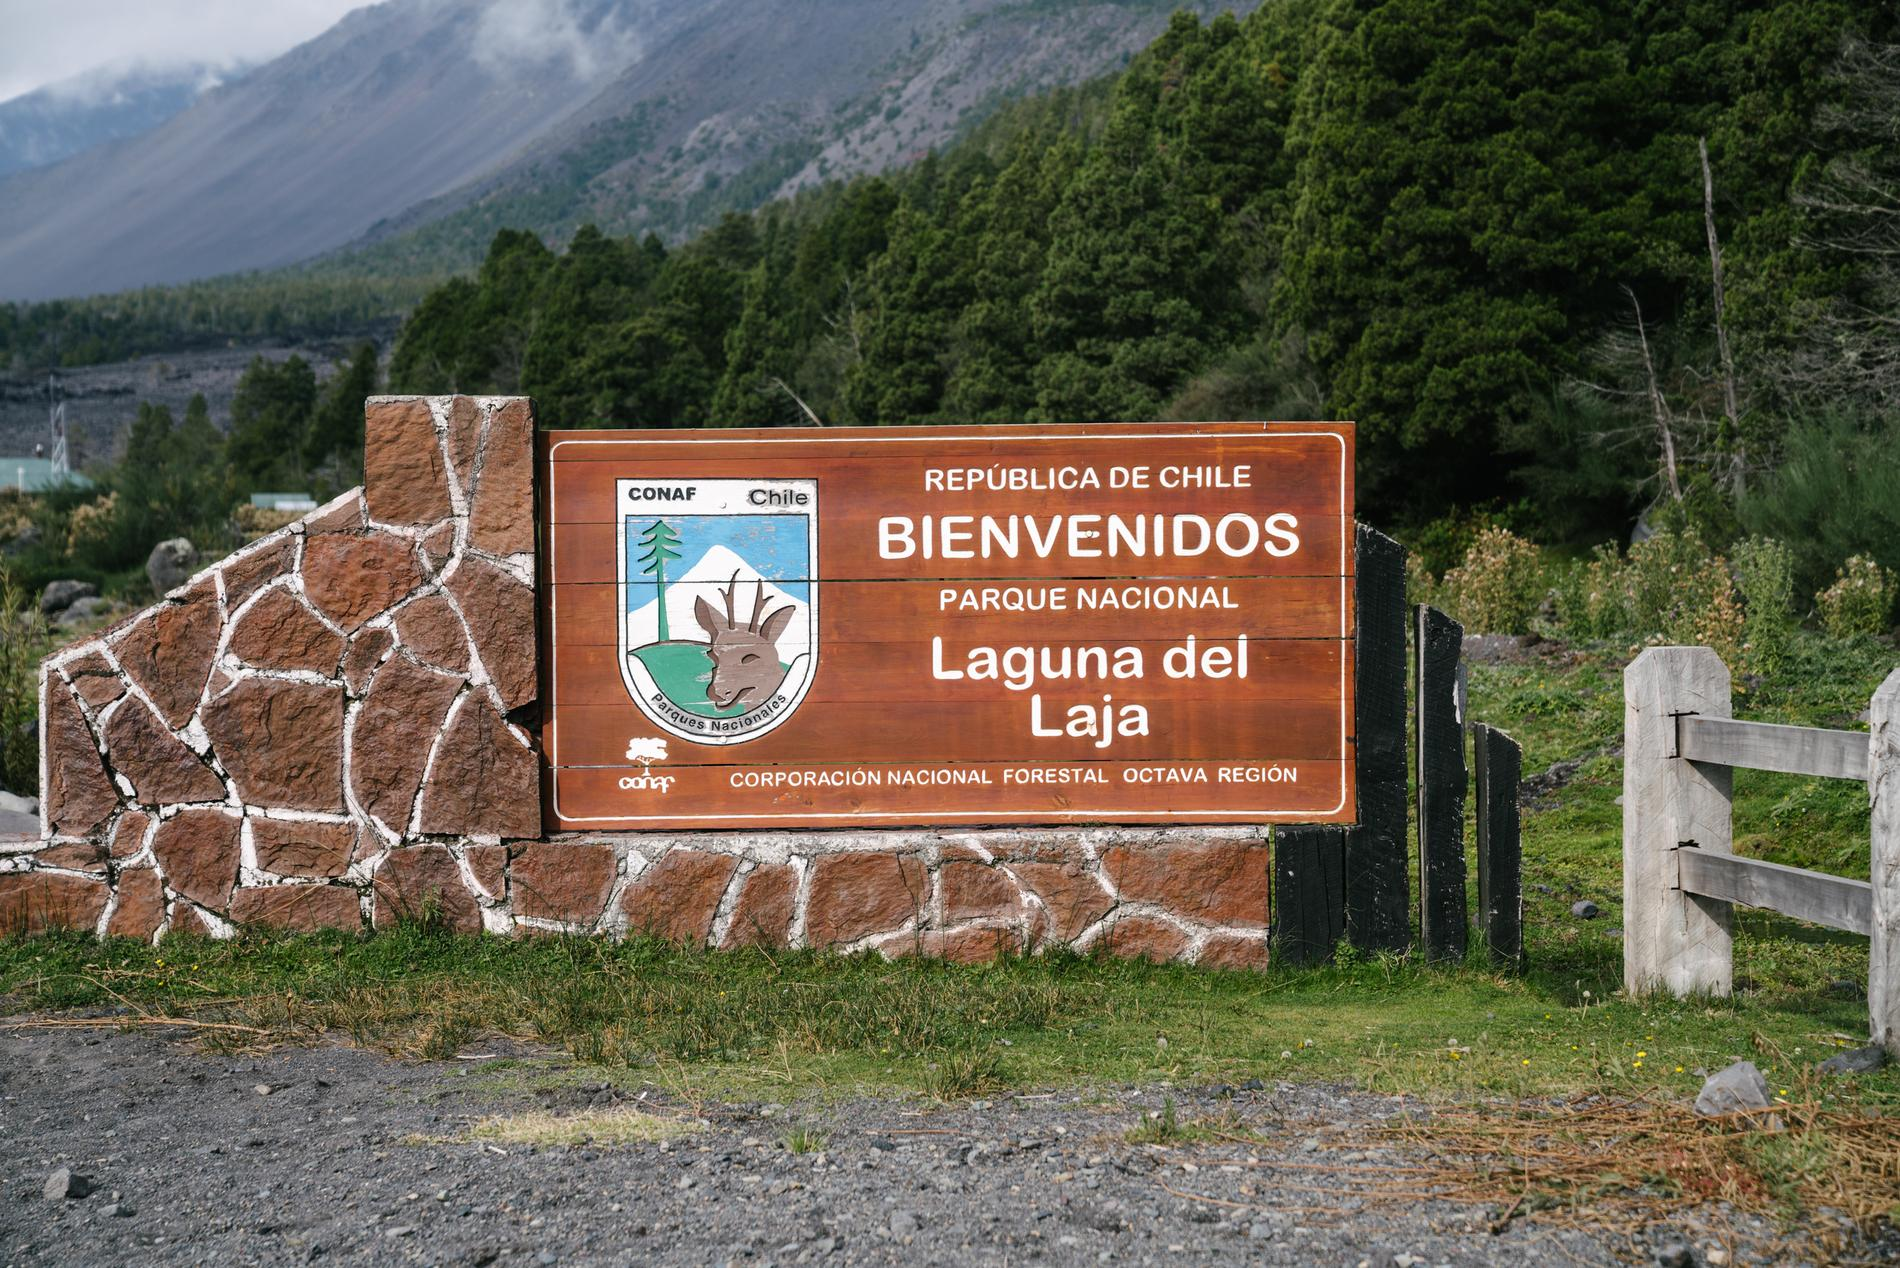 My first Chilean Nat'l Park